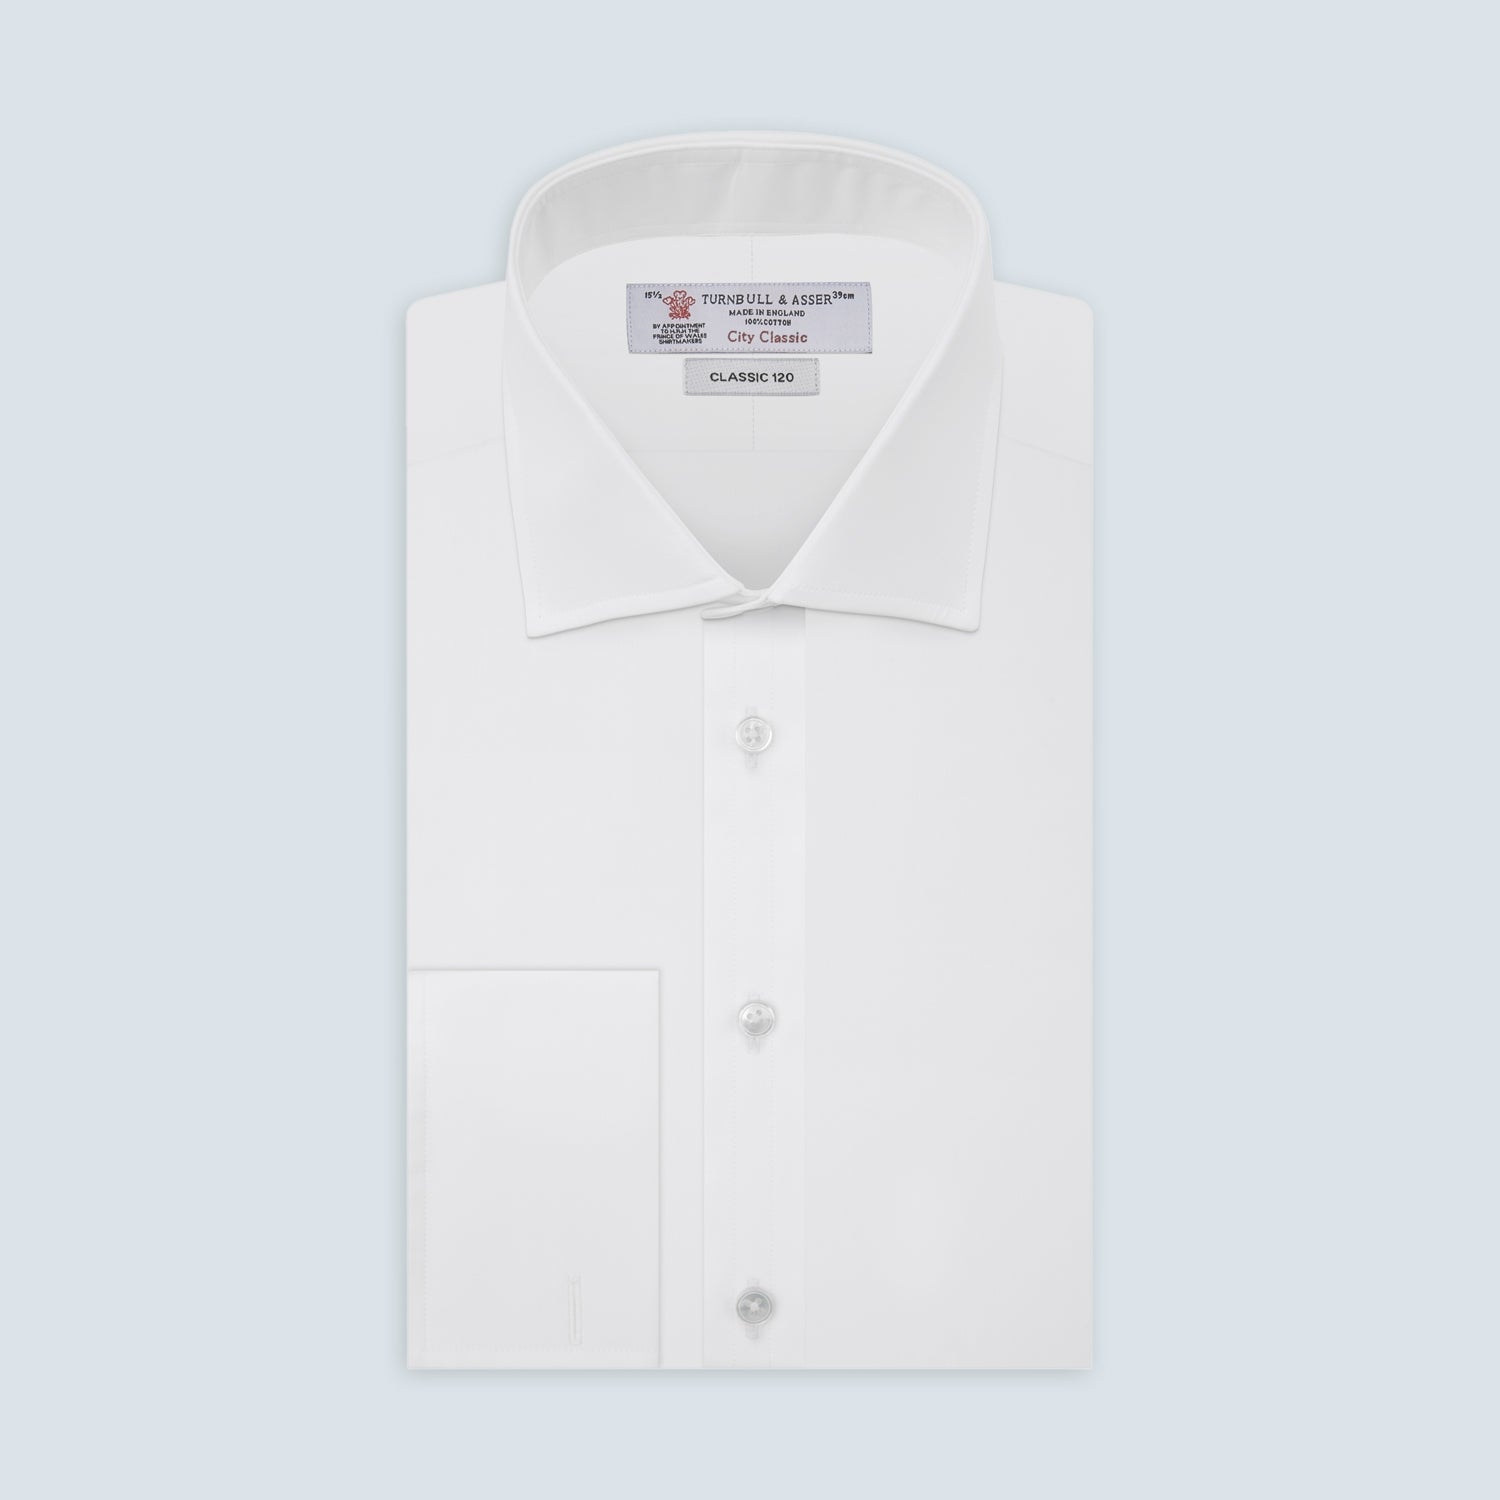 Two-Fold 120 White Cotton Shirt with Regent Collar and Double Cuffs